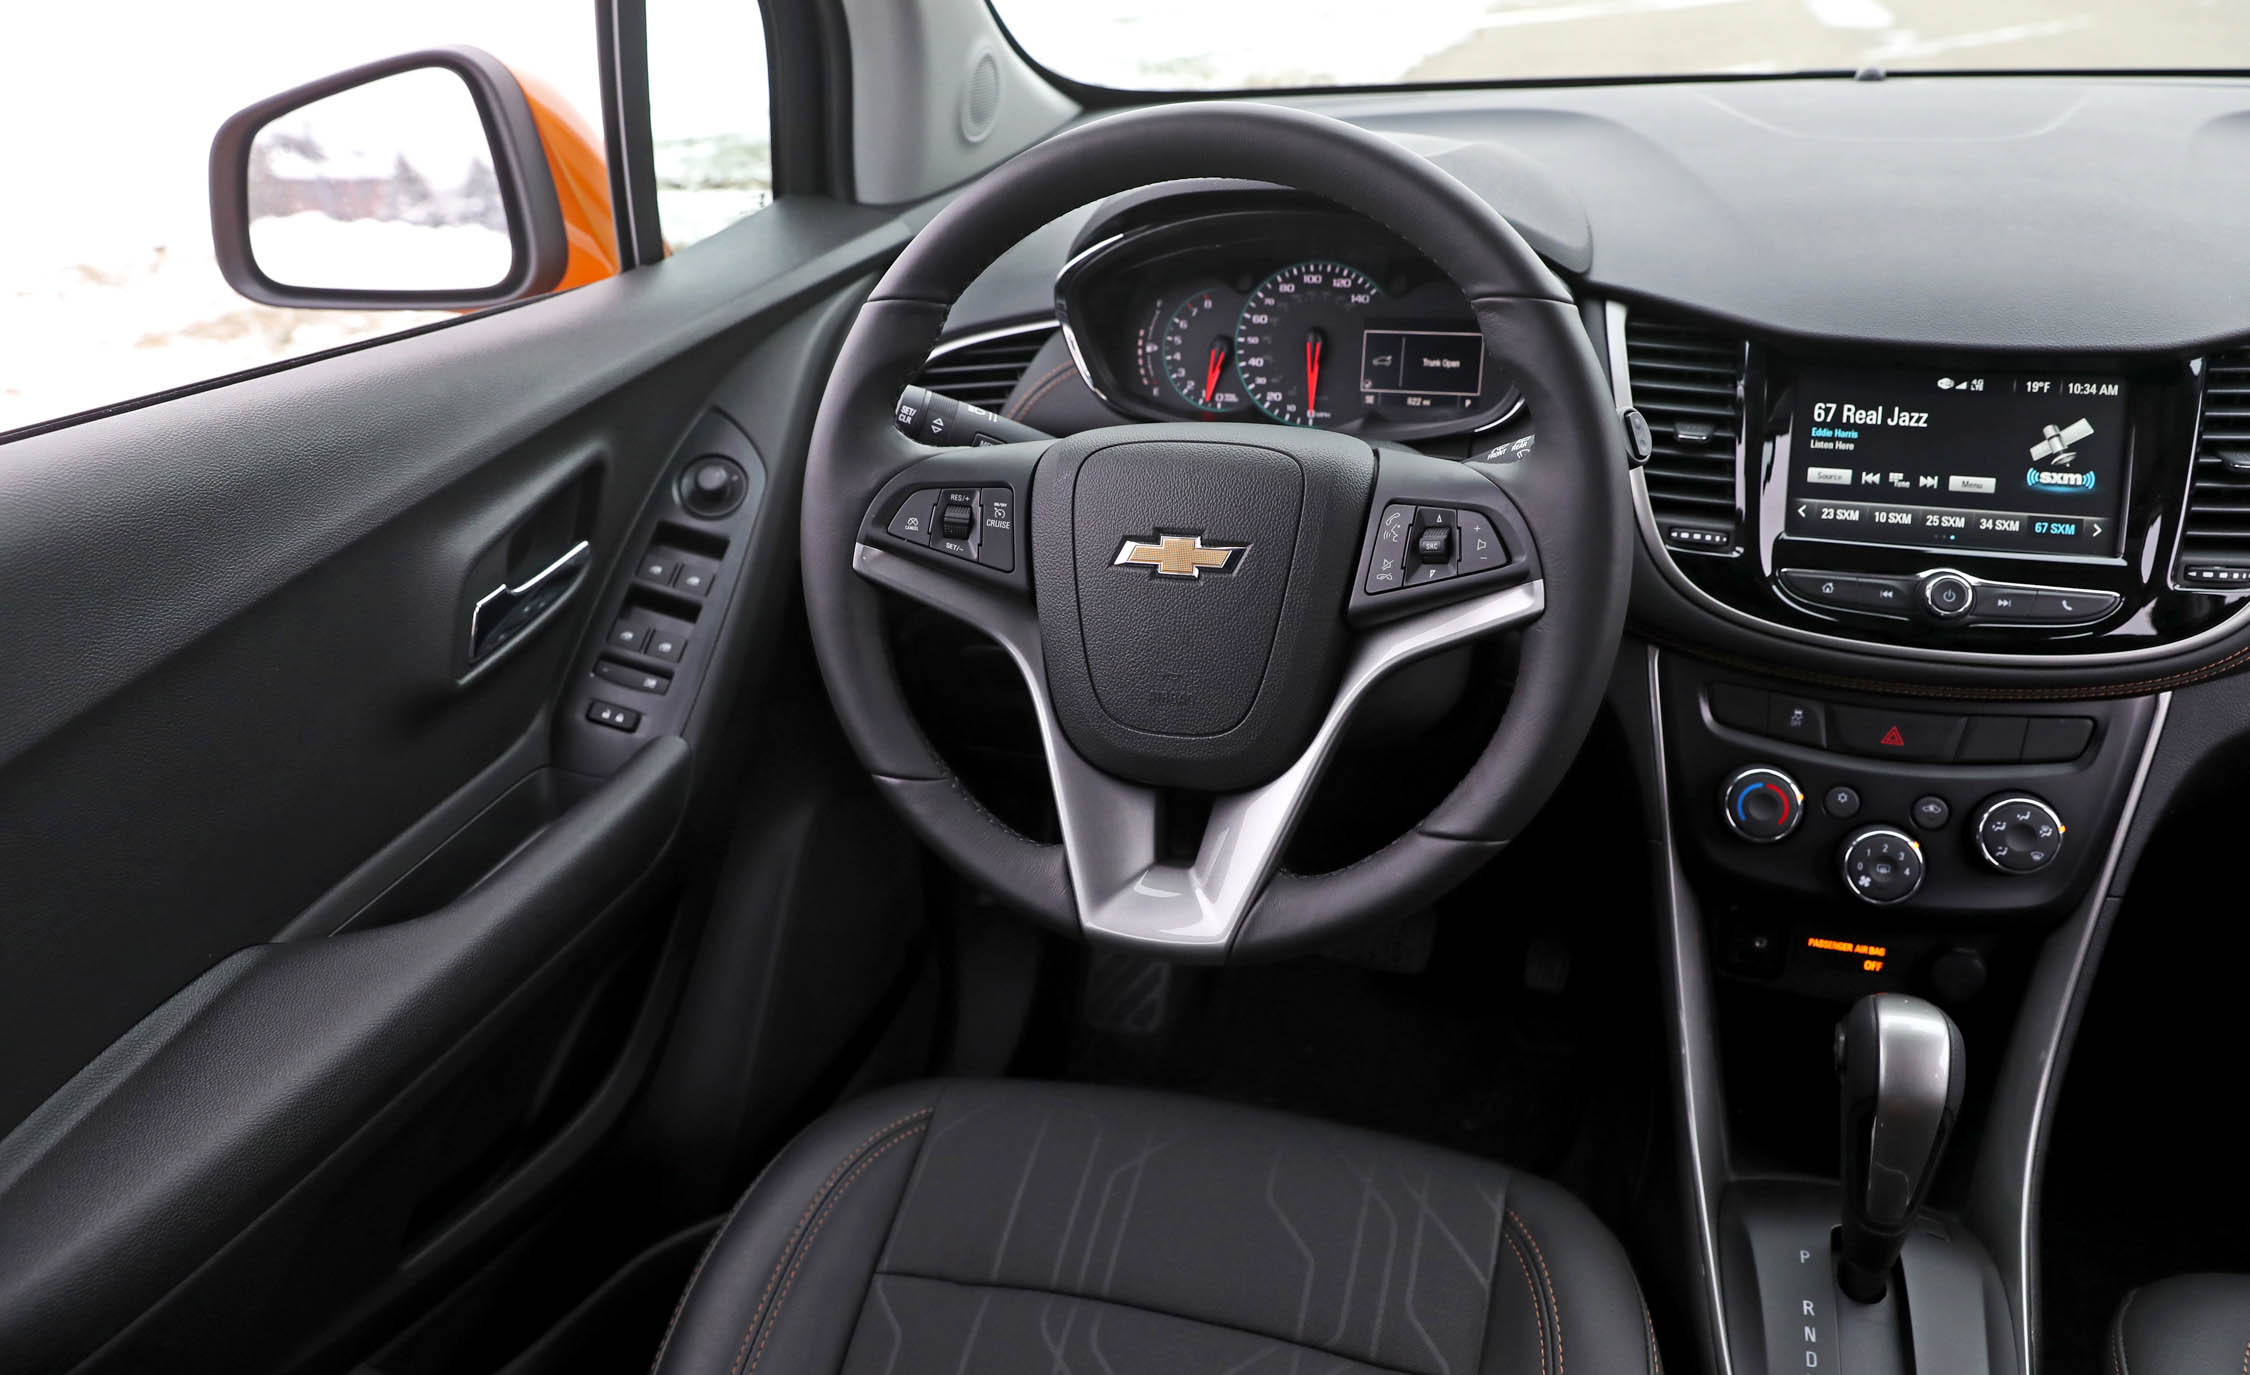 2017 Chevrolet Trax Interior Steering (Photo 22 of 47)